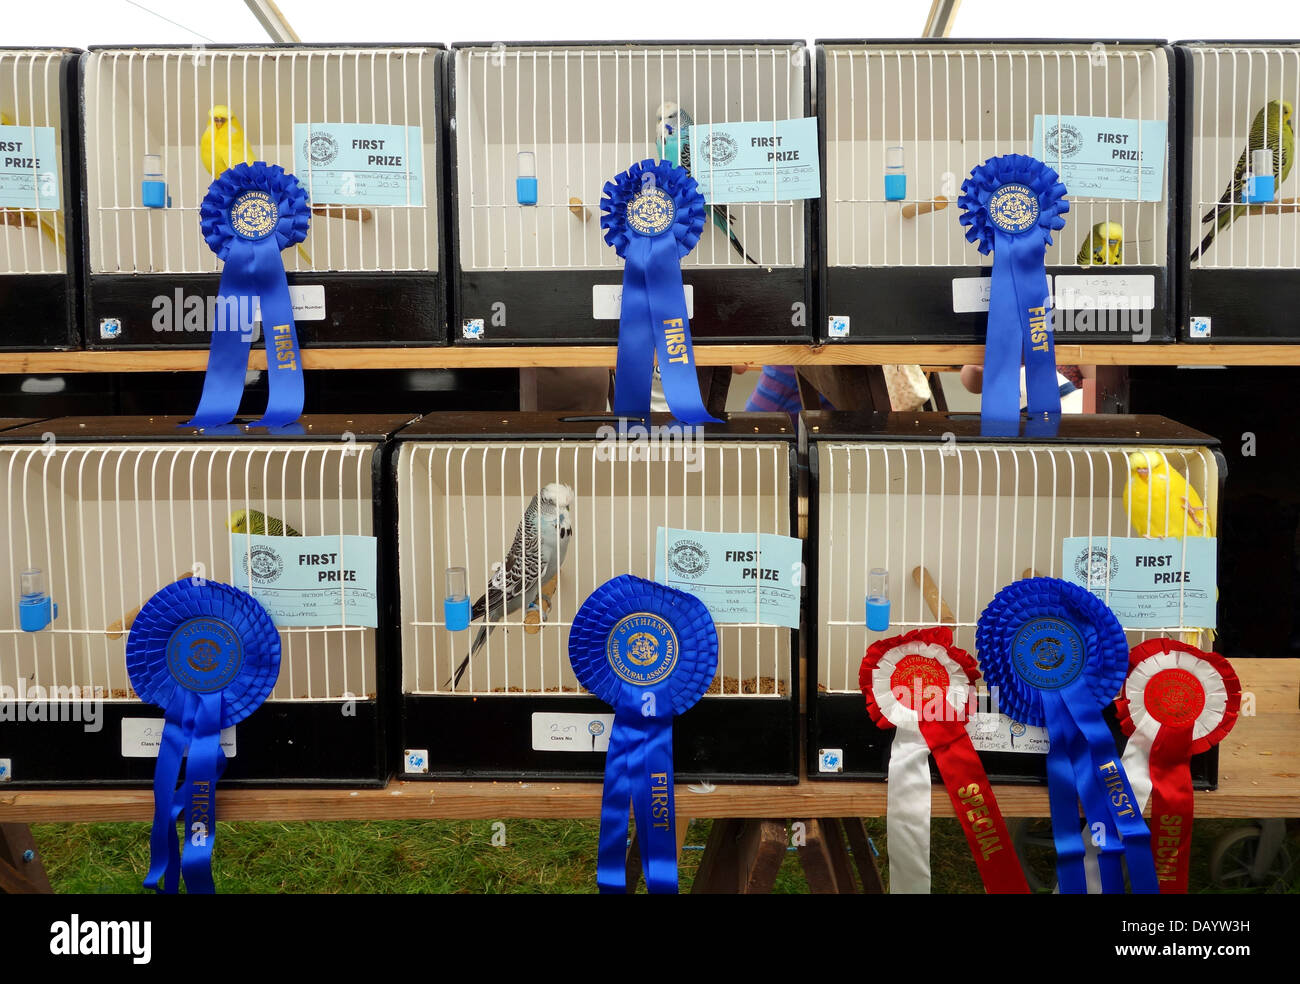 Prize winning budgerigars at Stithians show in Cornwall, UK - Stock Image